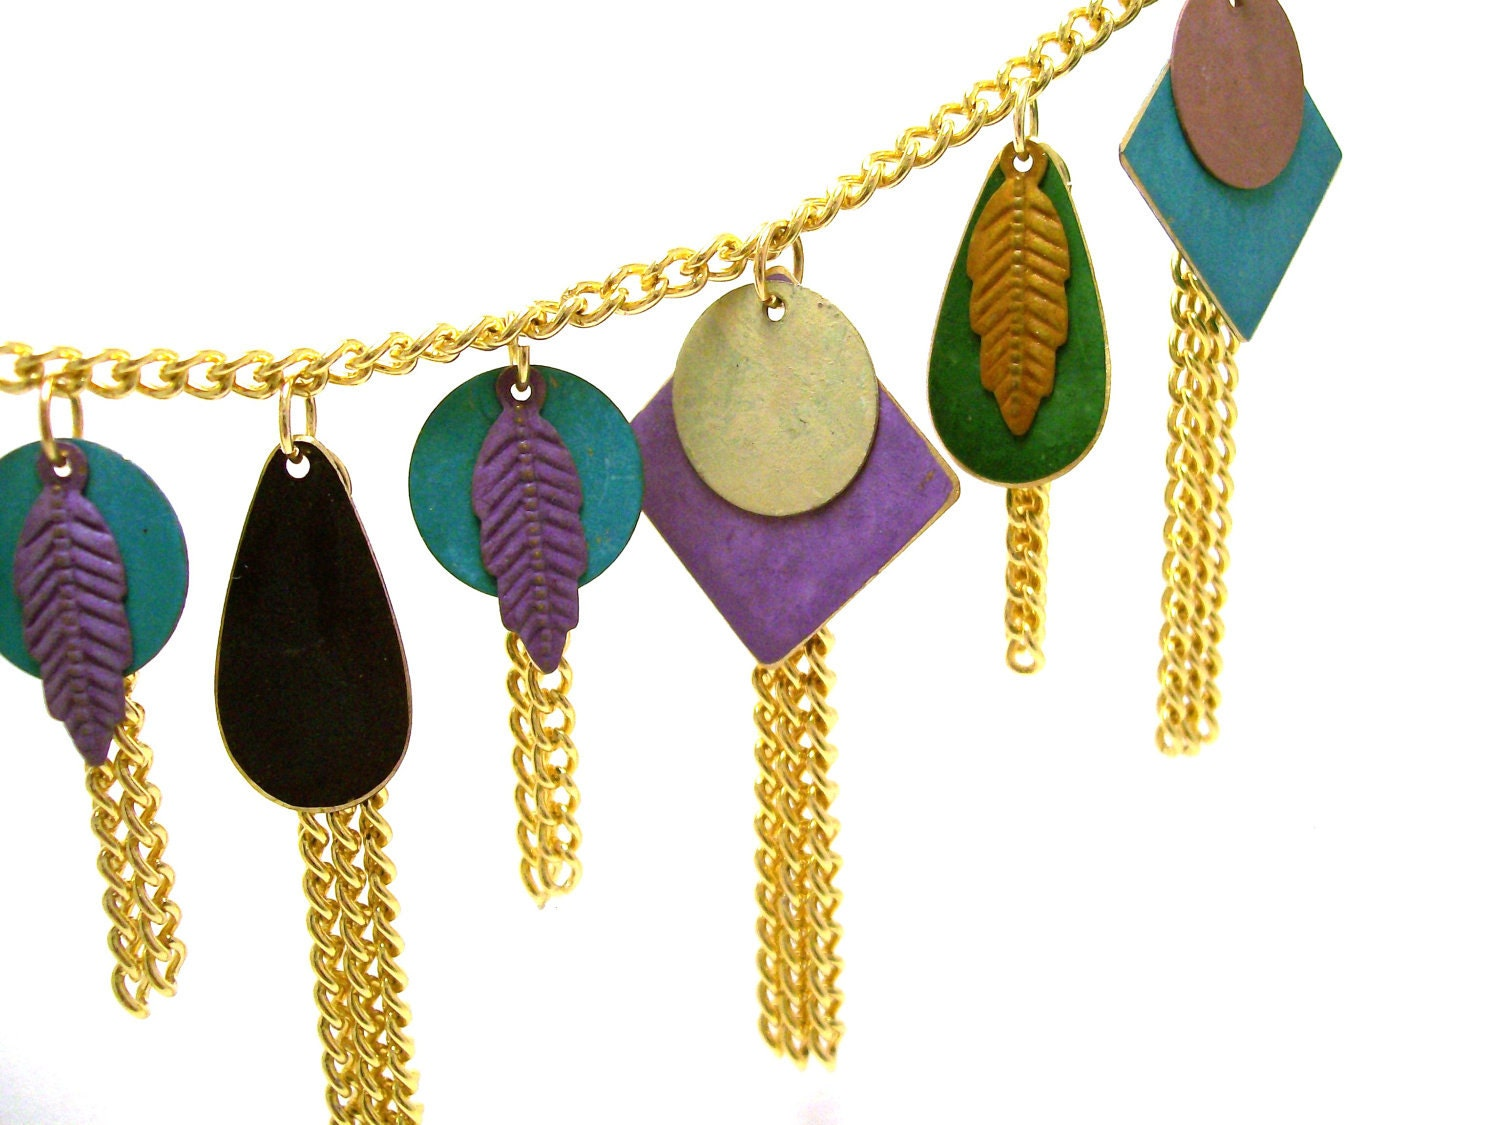 Shapes and Feathers Necklace